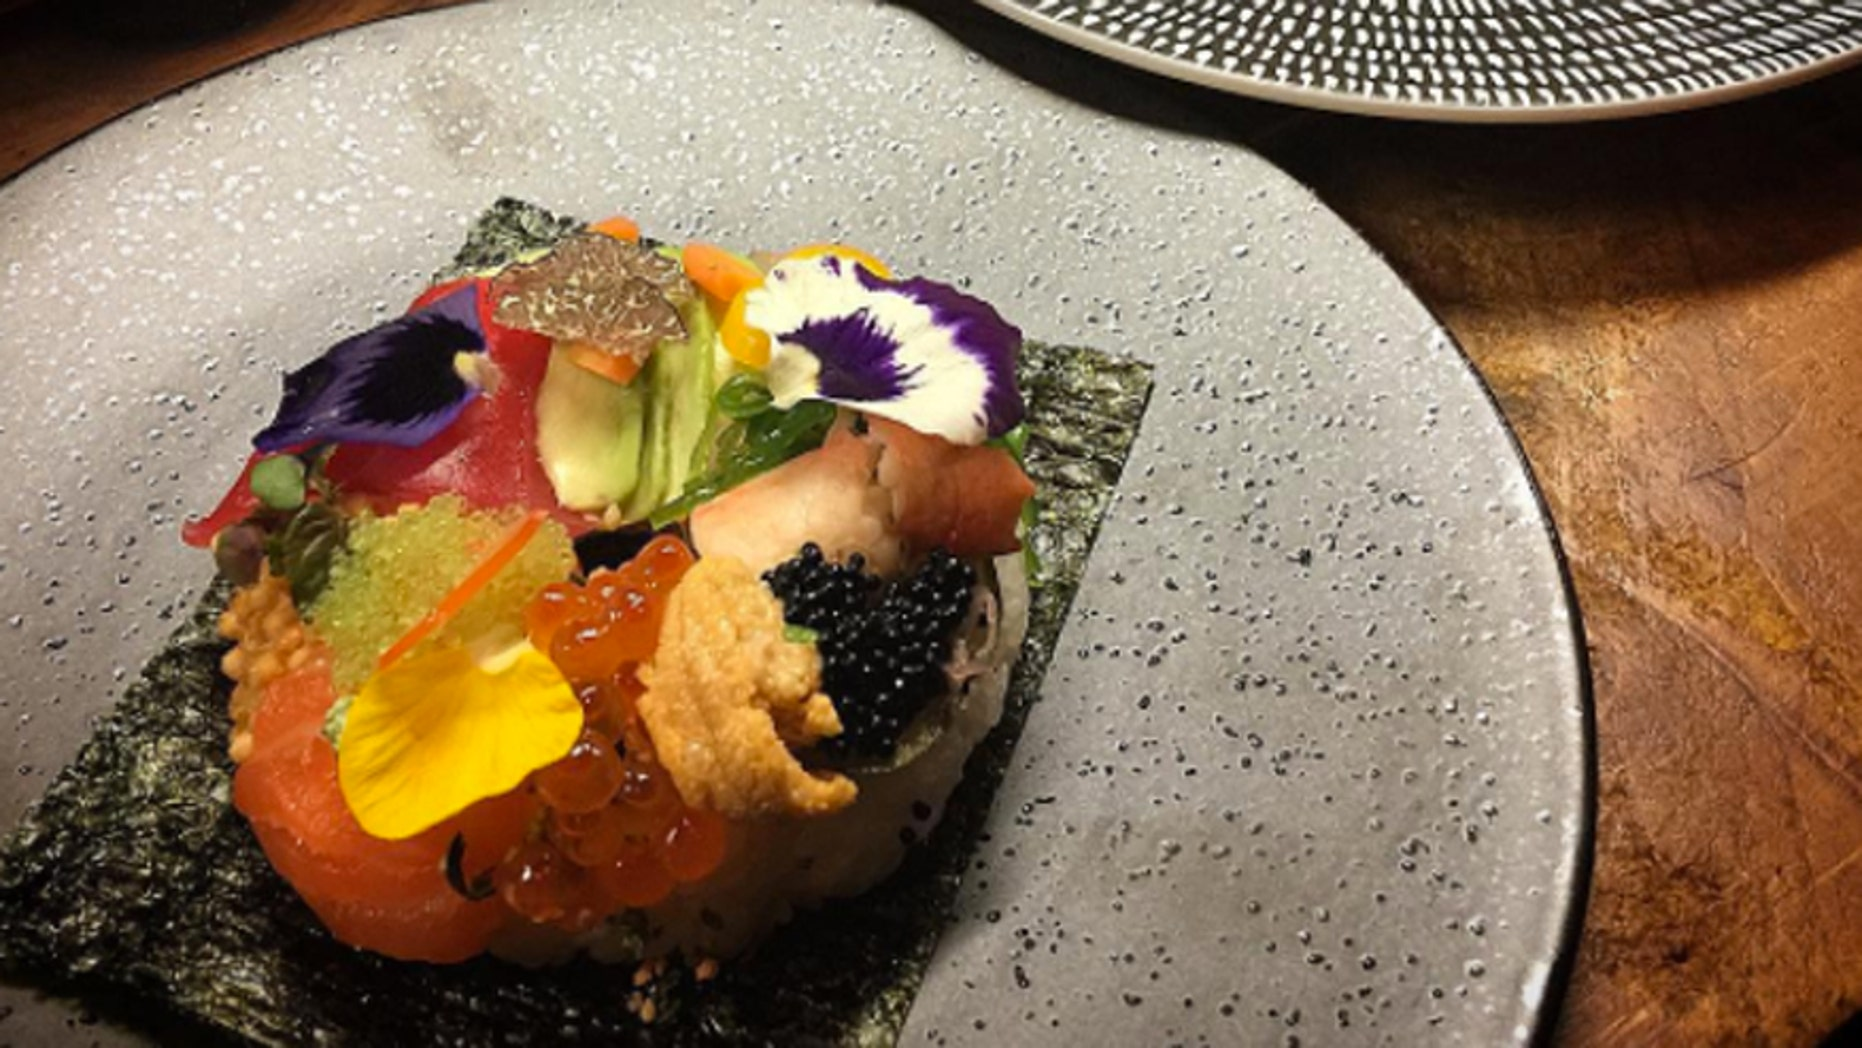 The sushi doughnut is a ring-shaped dish of fish, vegetables and more.